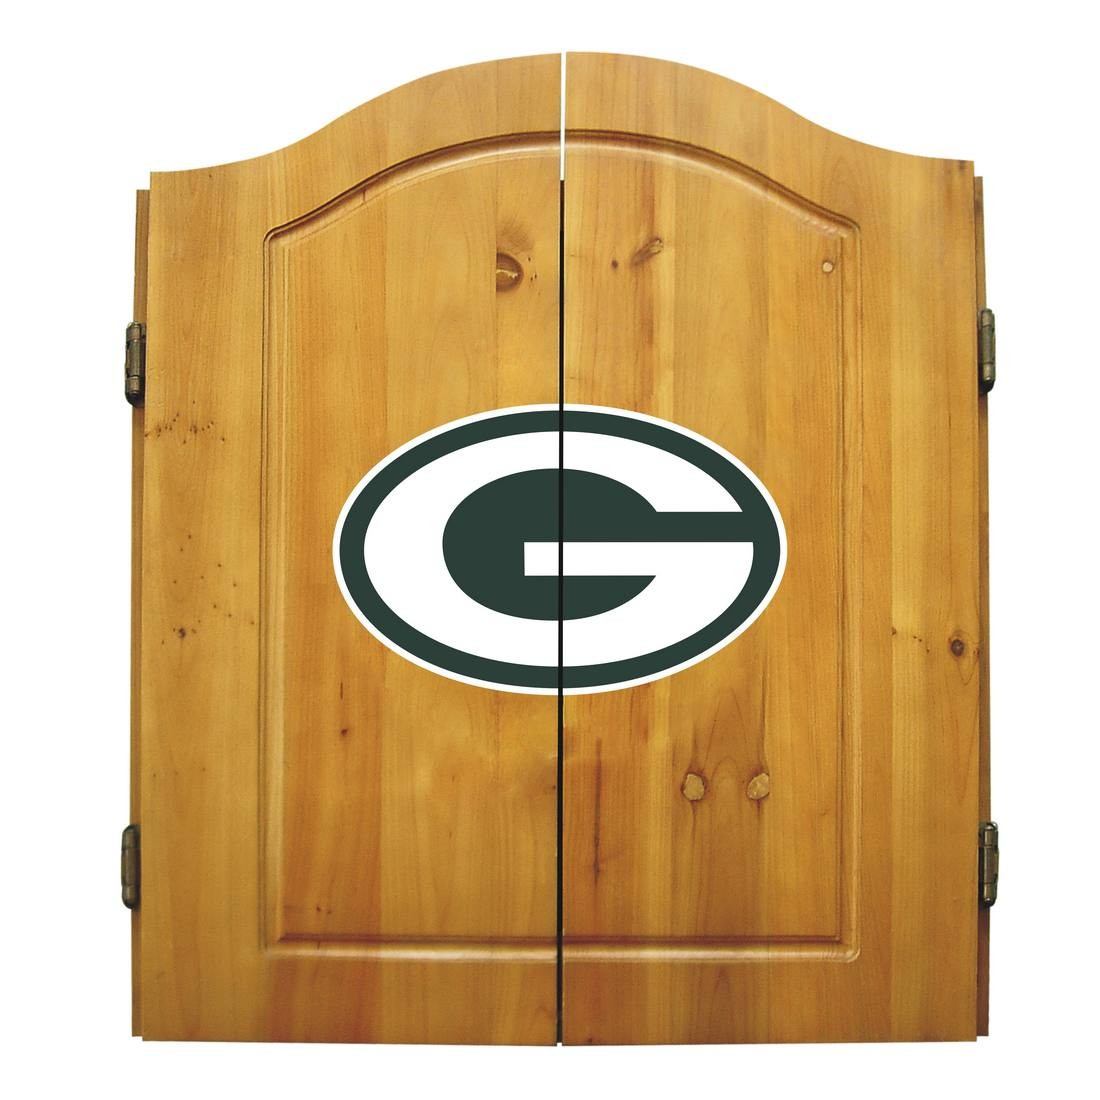 Green Bay Packers Dart Cabinet Set - 20-1001 - Nfl Football Green Bay Packers Bbq Sets 20-1001